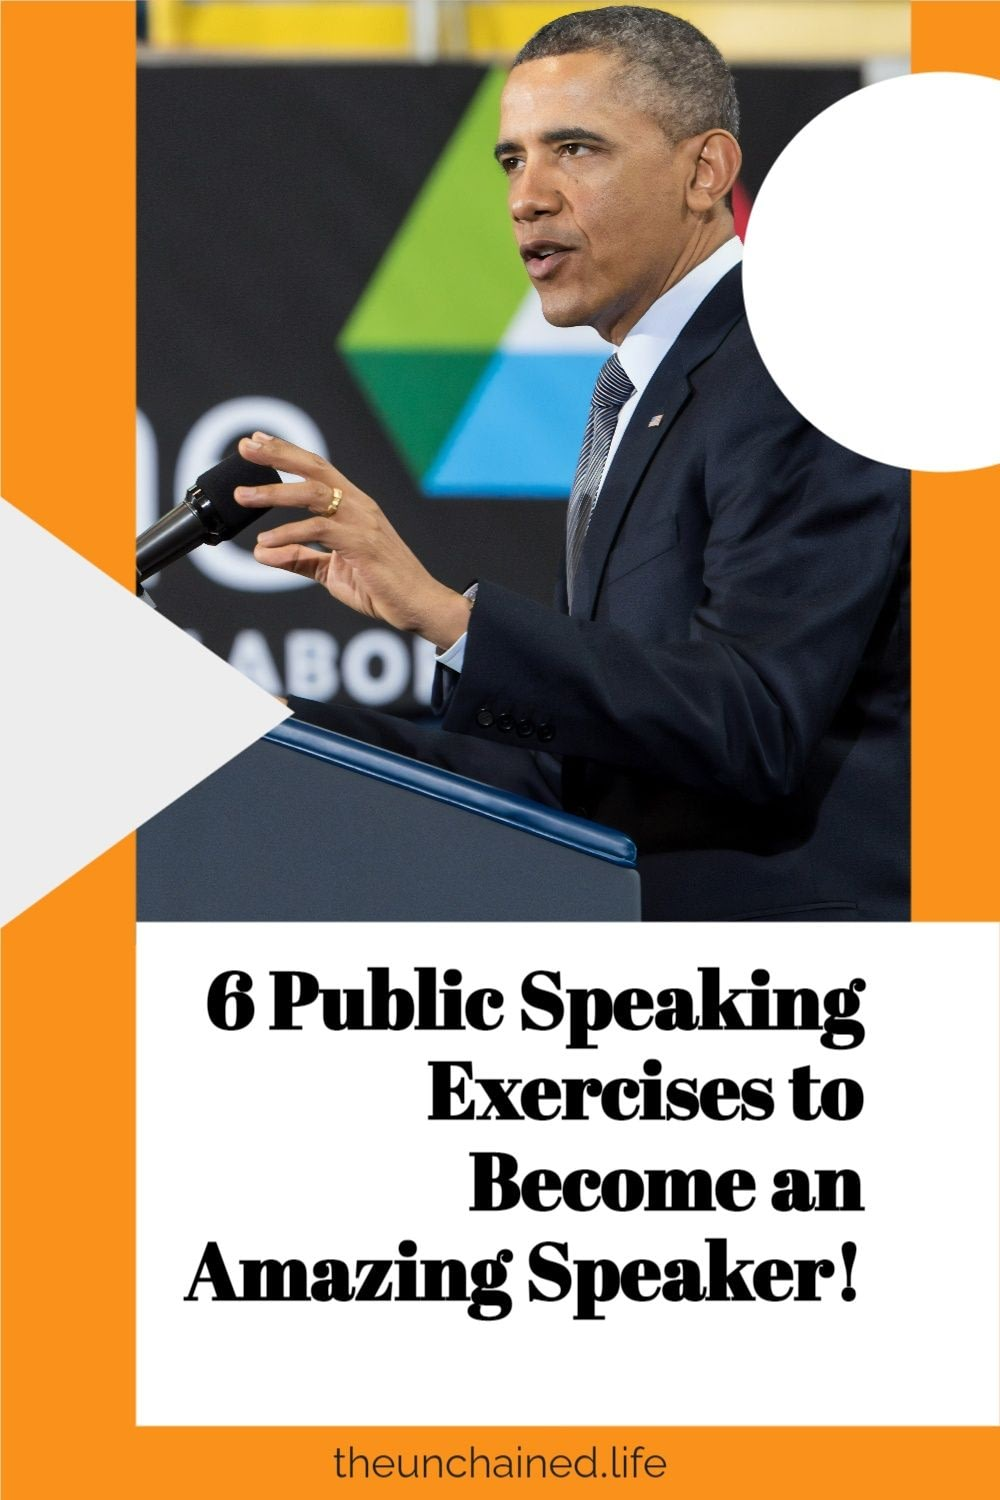 6 Public Speaking Exercises to Become an Amazing Speaker!